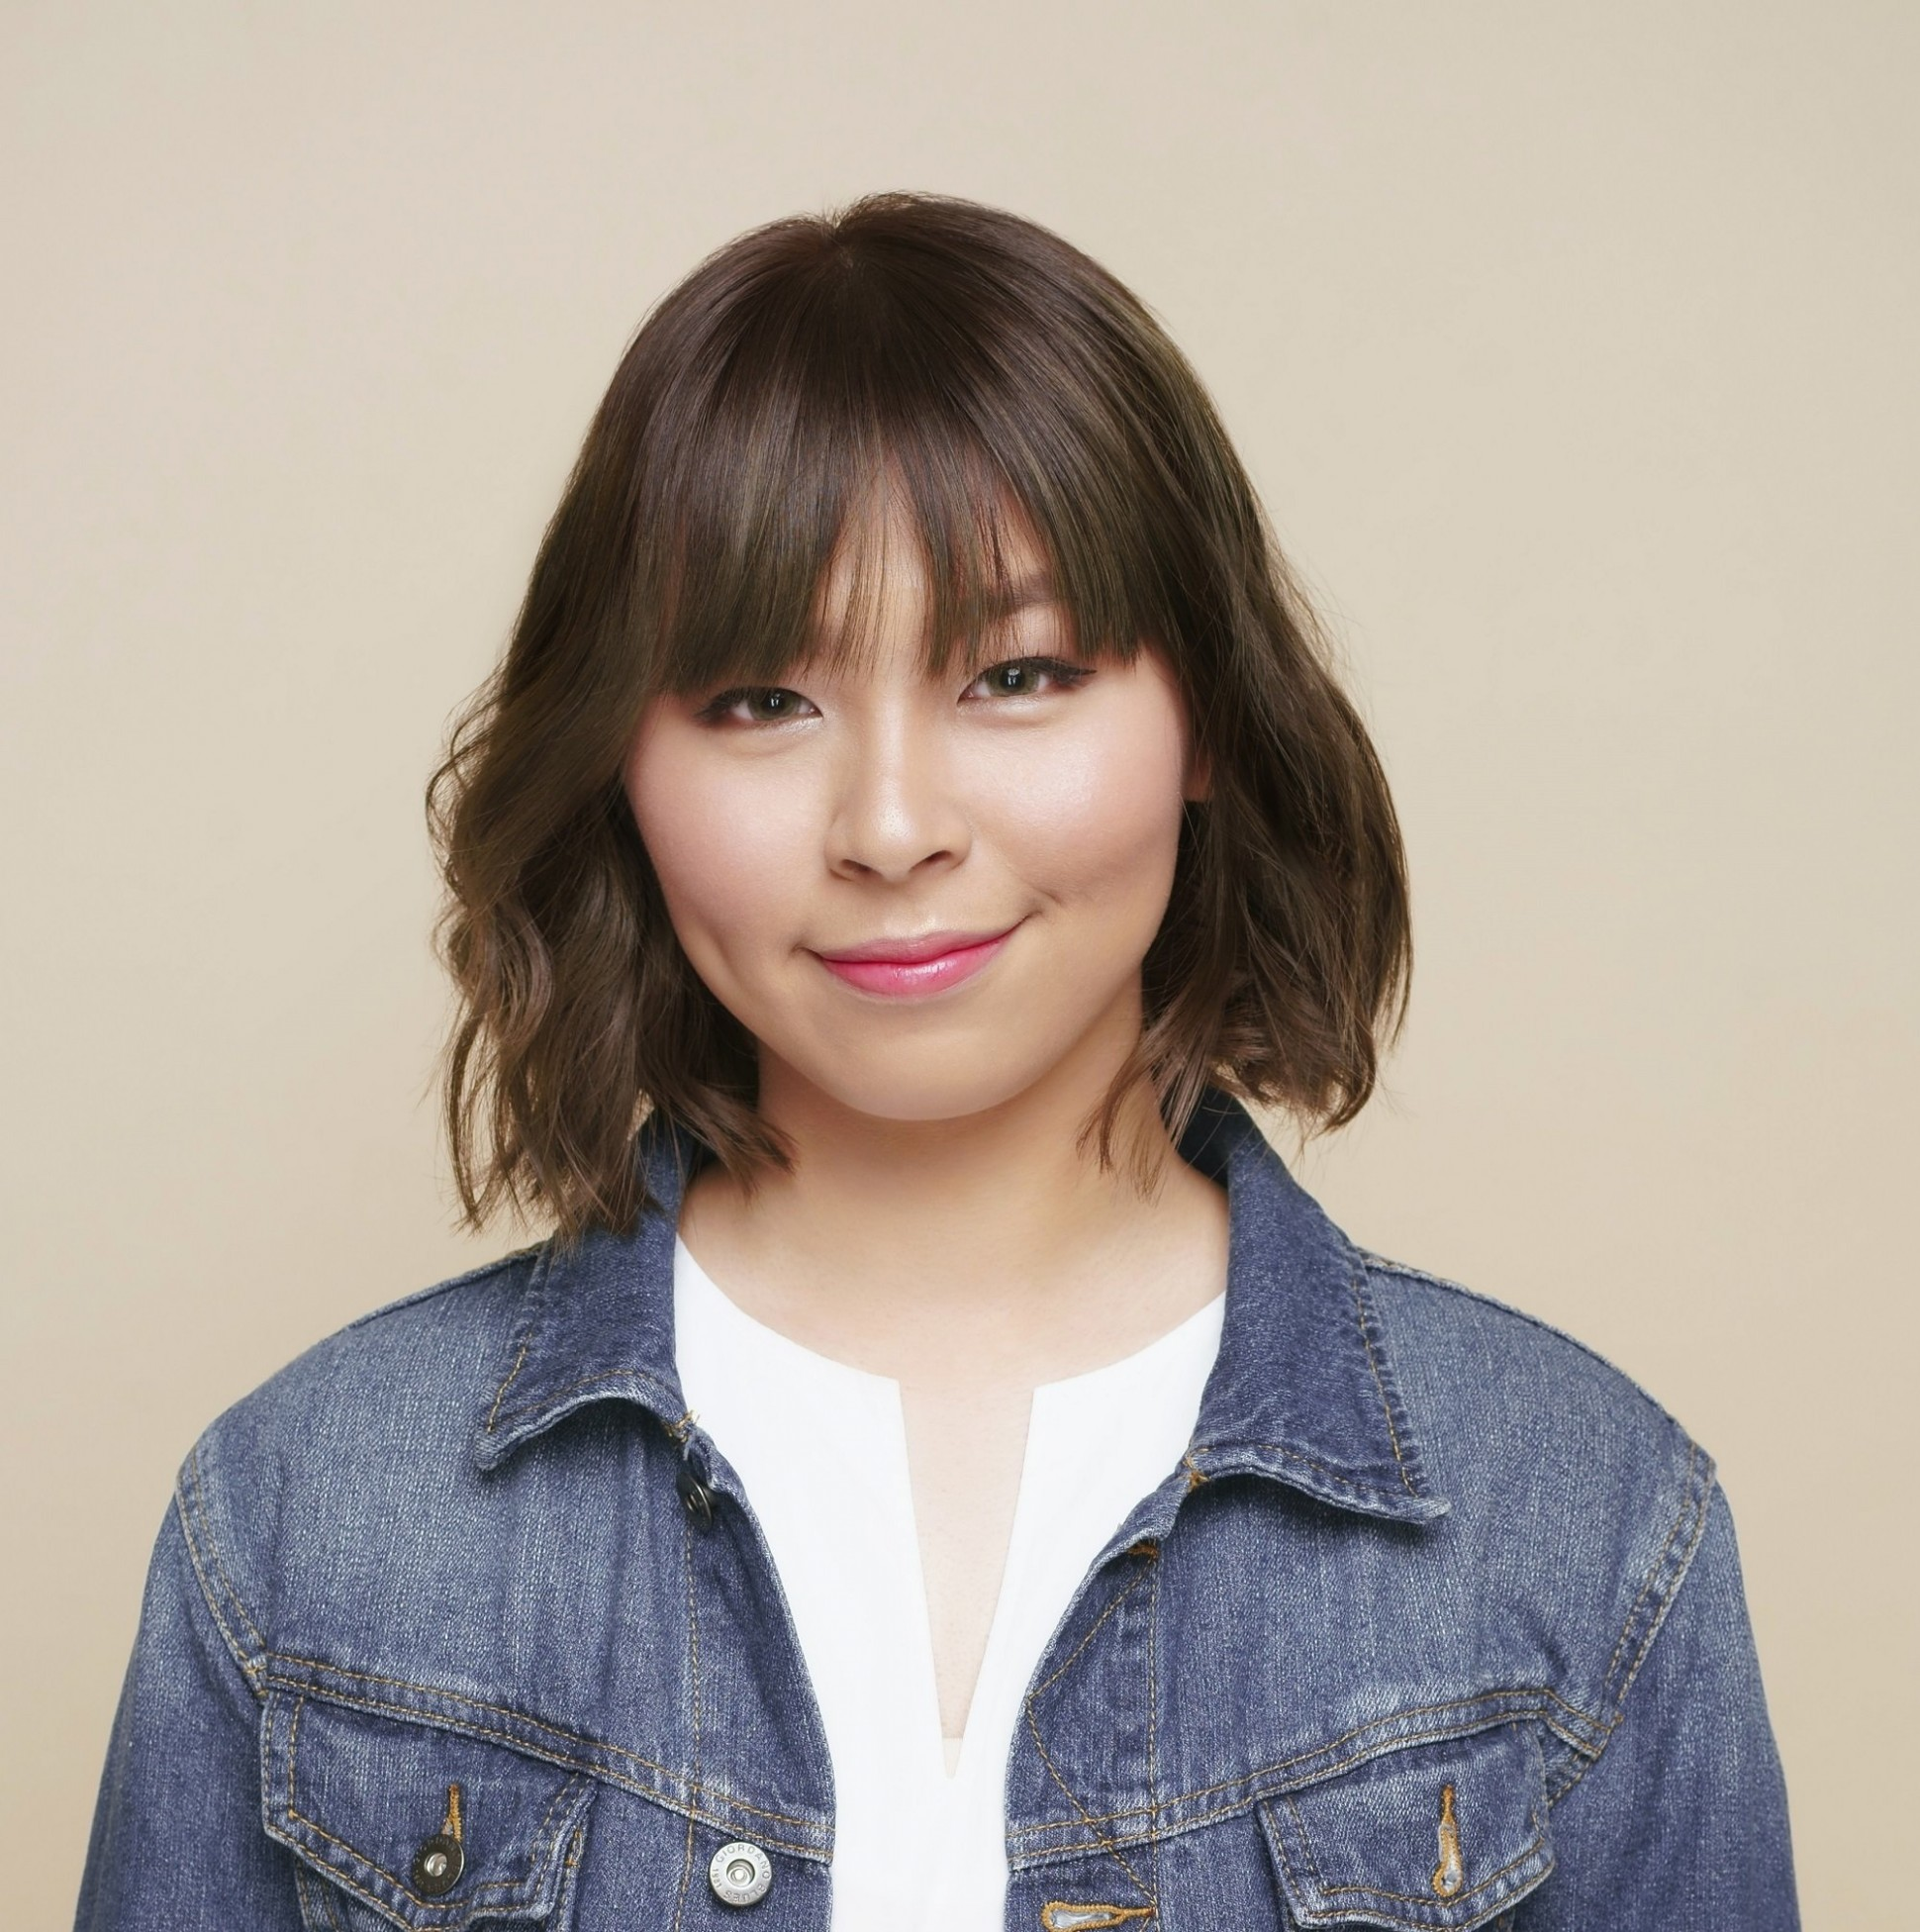 Short Hair For Round Face: 9 Stylish Ideas For 9! Short Hair For Circle Face